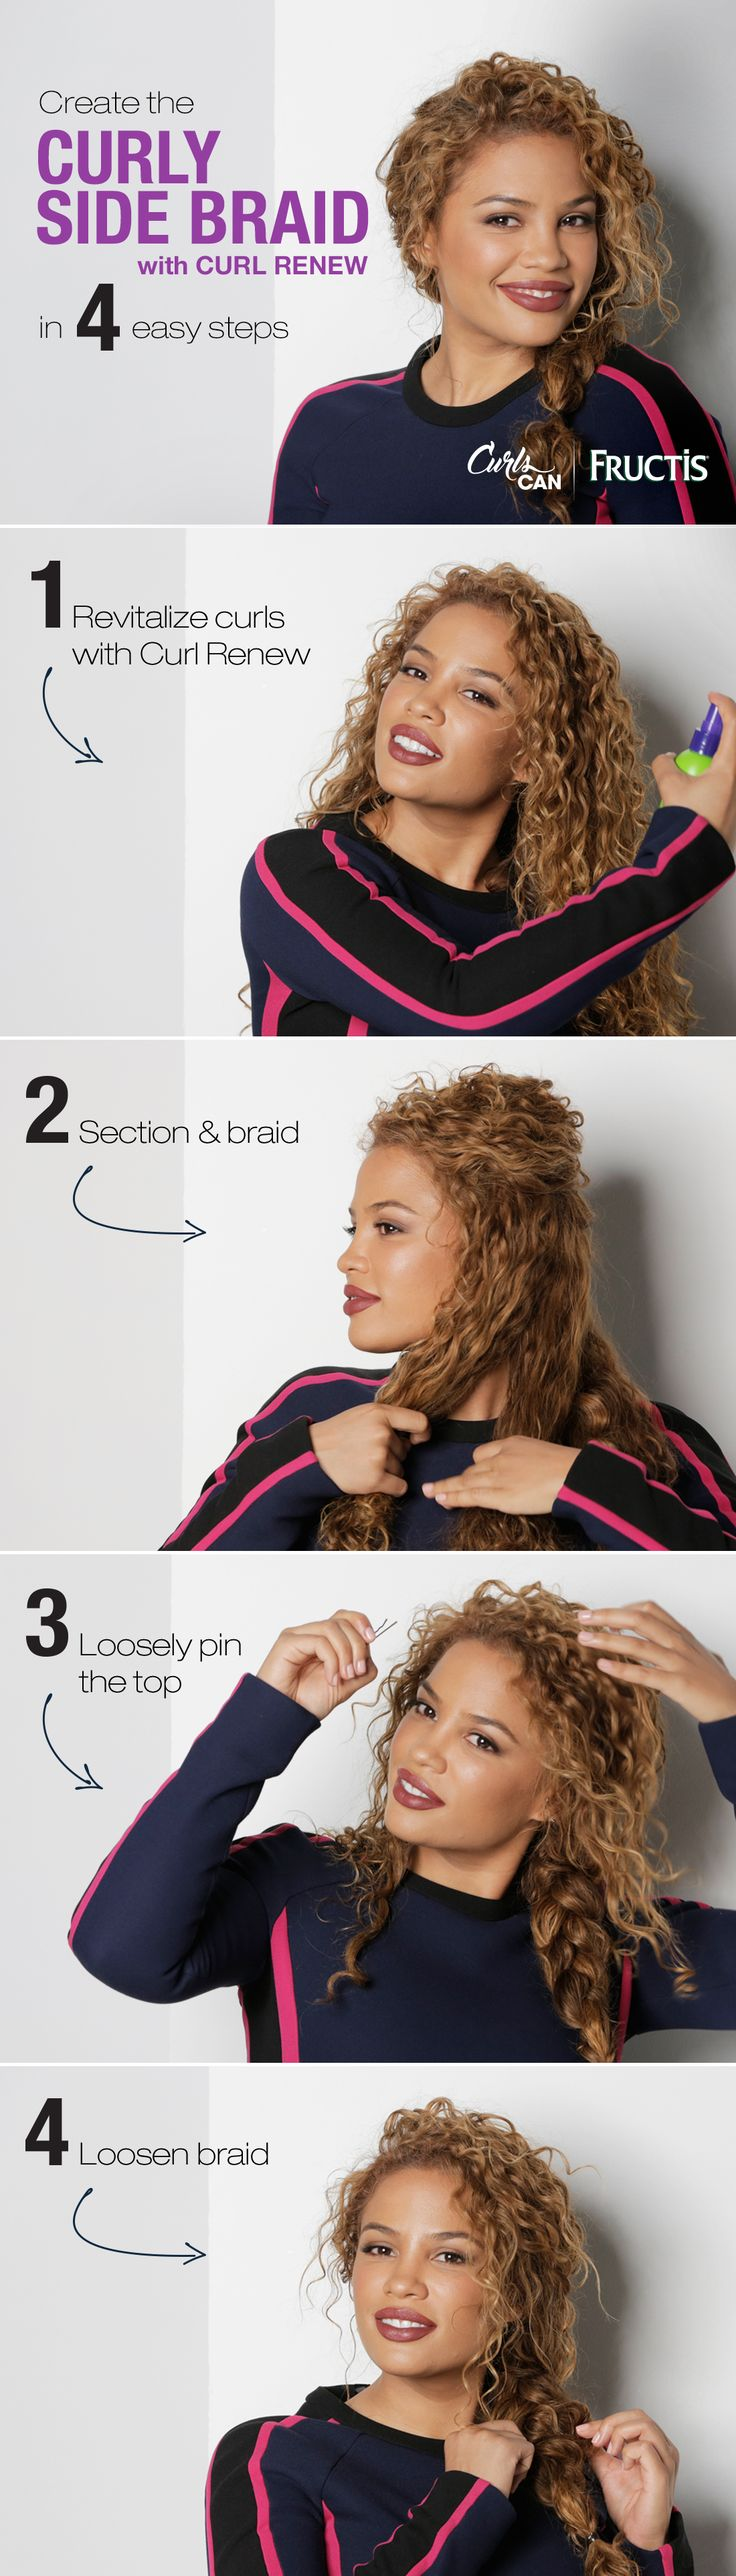 Curly hair is perfect for a messy braid! Watch Andrea's Choice create this simple Curly Side Braid hairstyle using Curl Renew spray to keep her curls hydrated and frizz-free. Because #CurlsCan!